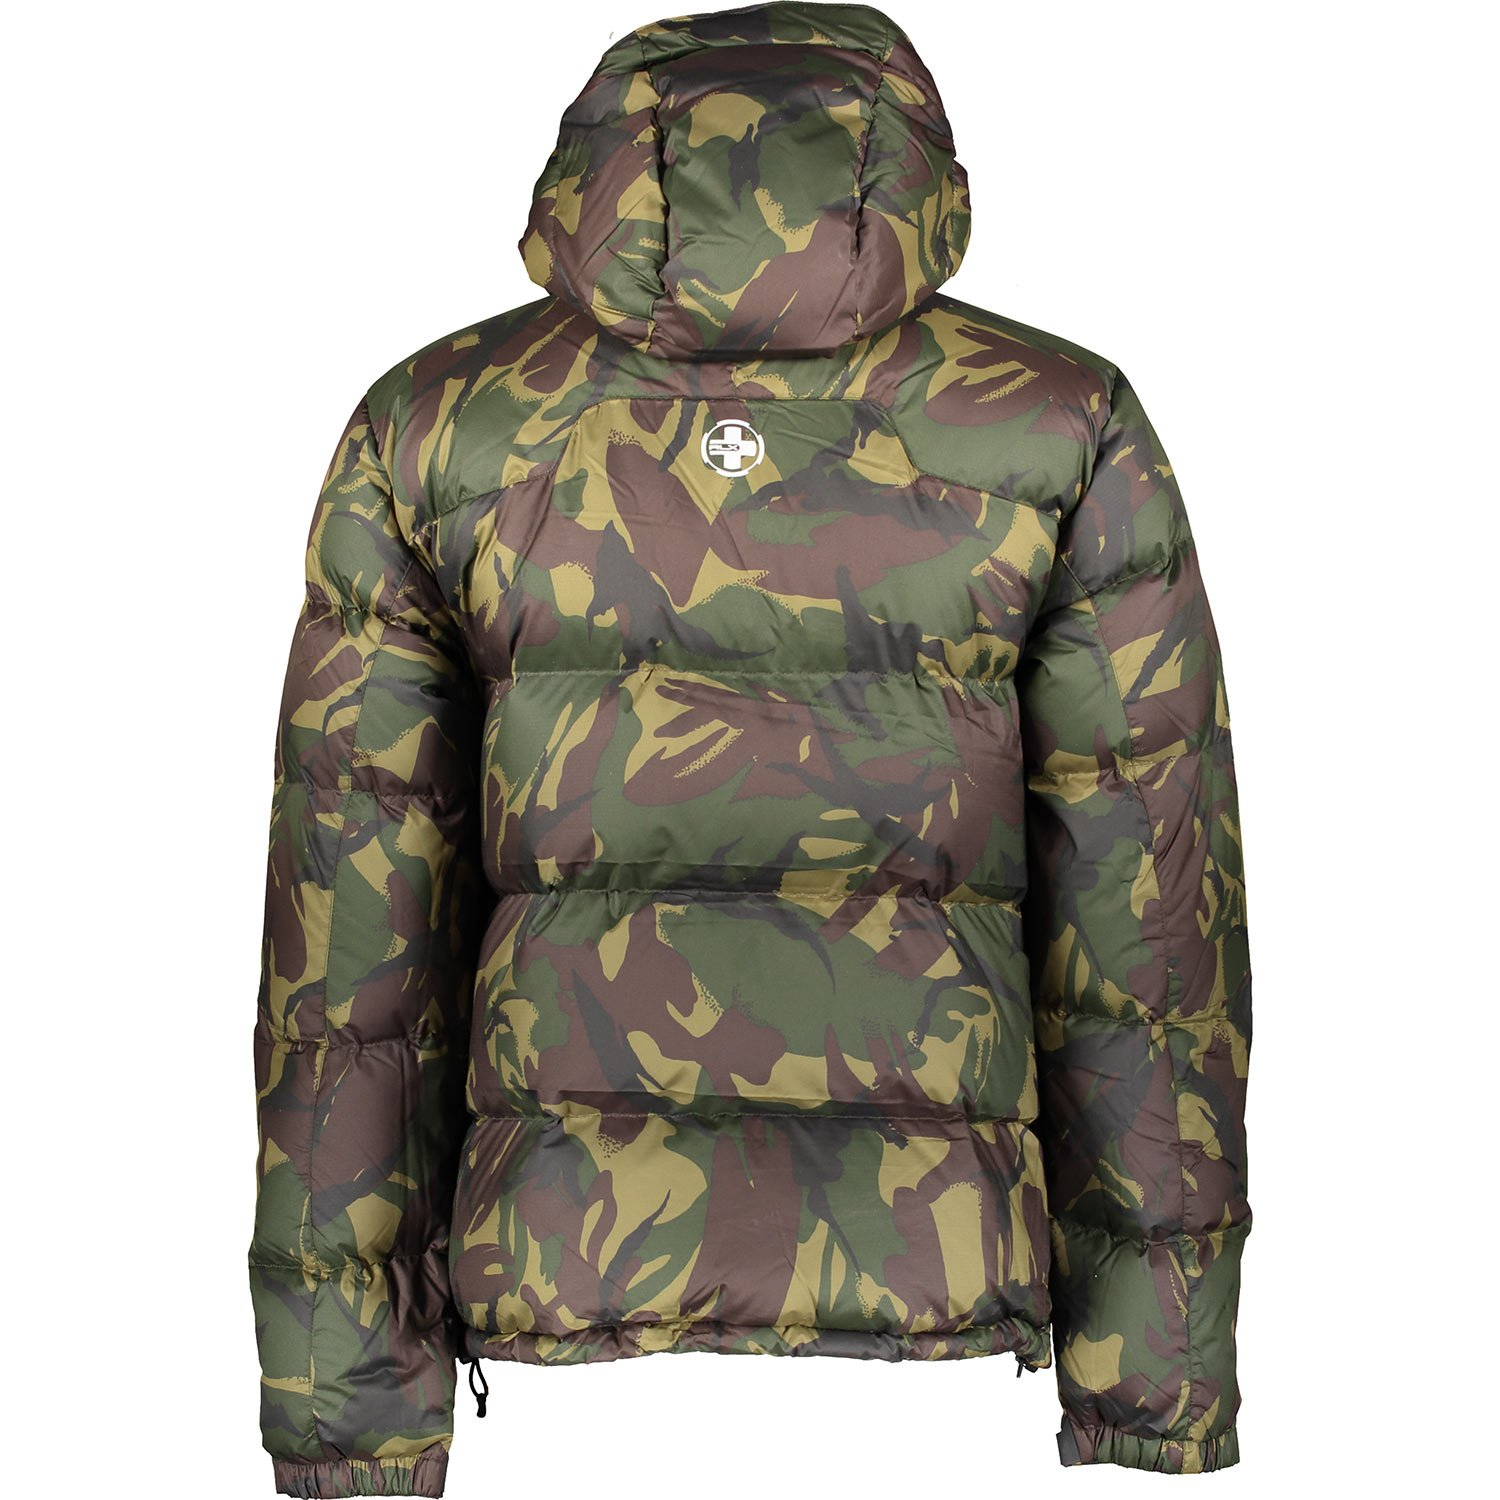 7eeb6fcd9a3f4 RALPH LAUREN RLX Green Camo Quilted Down Jacket. Size L: Amazon.co.uk:  Clothing